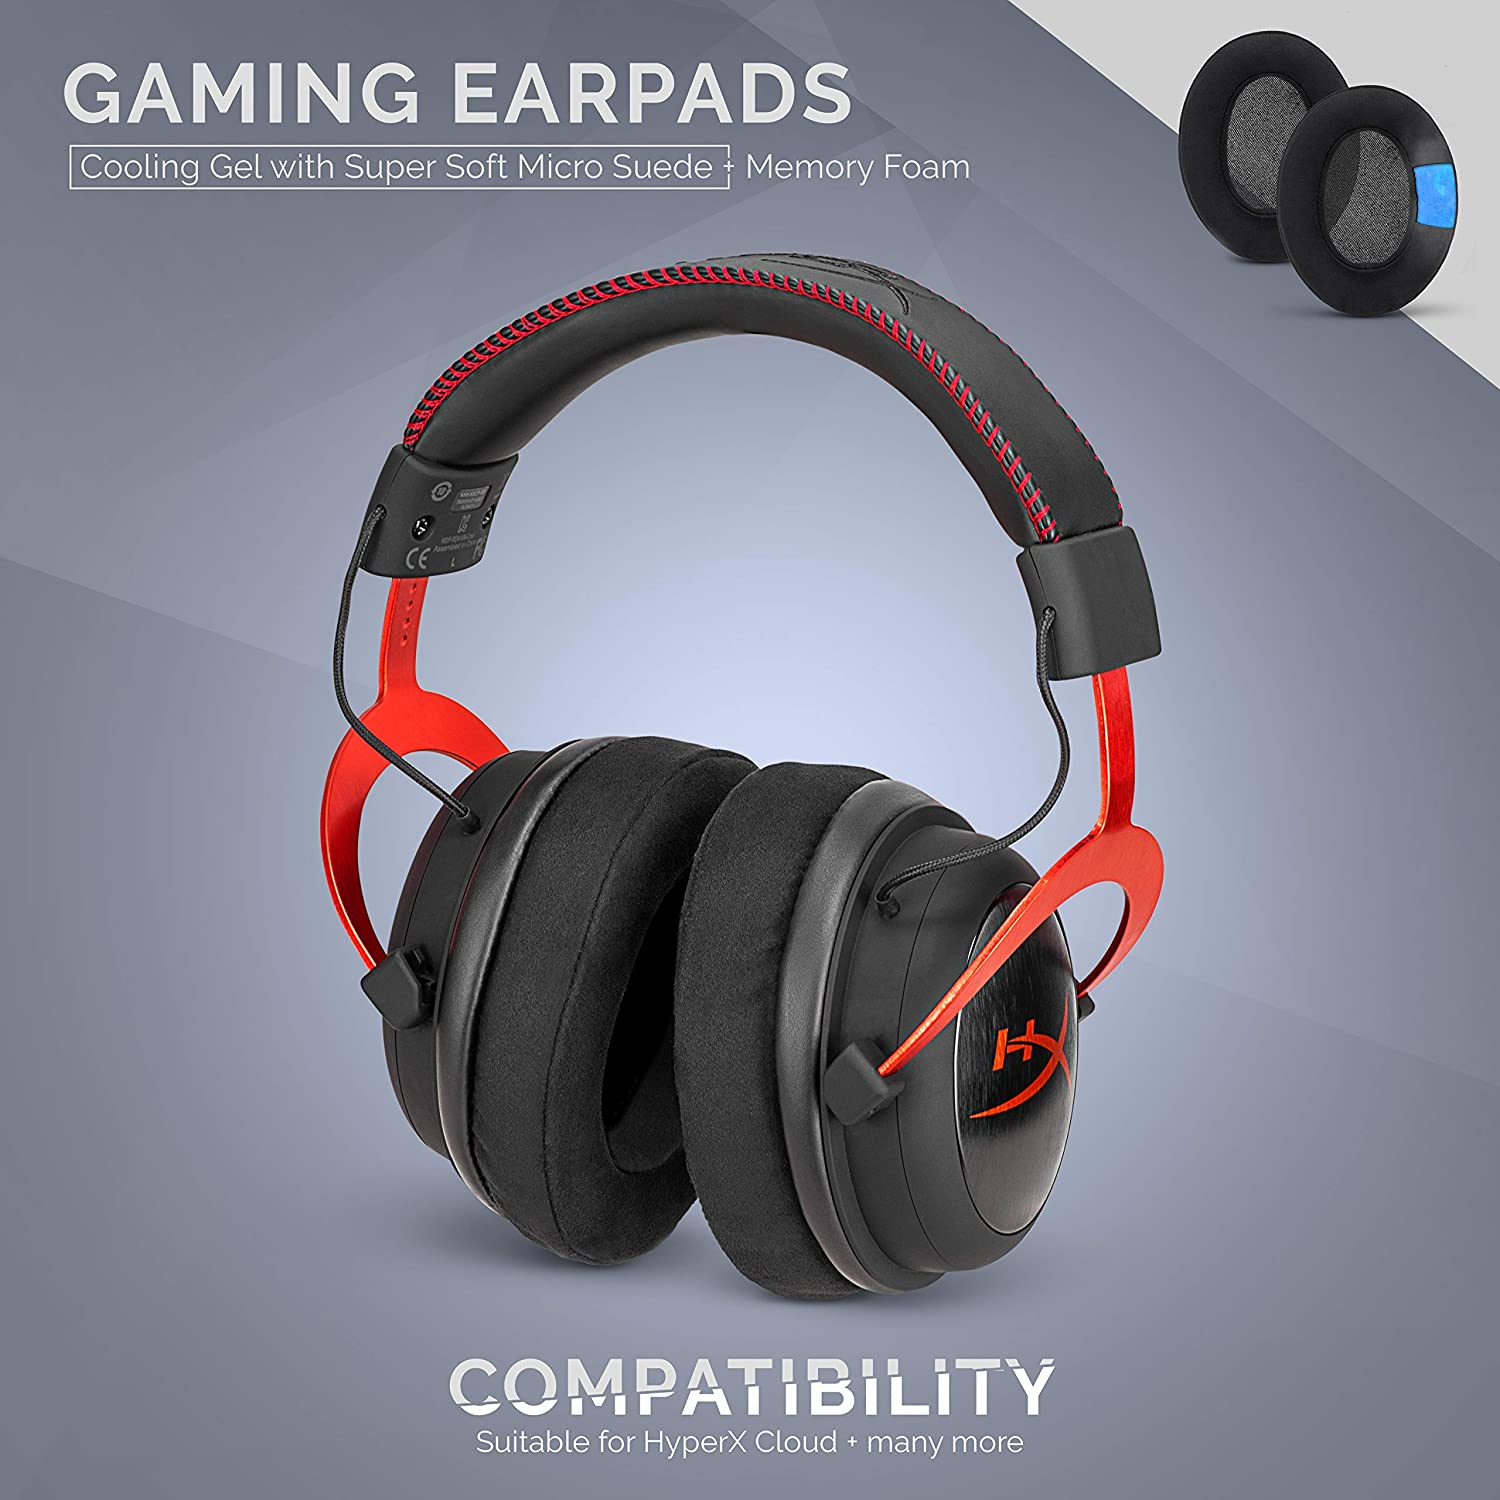 ATH M50X See List Brainwavz Gaming Earpads for SteelSeries Arctis Cooling Gel SHURE /& Other Headphones Memory Foam Micro Suede HyperX Cloud /& Other Gaming Headsets Oval Ear Pad